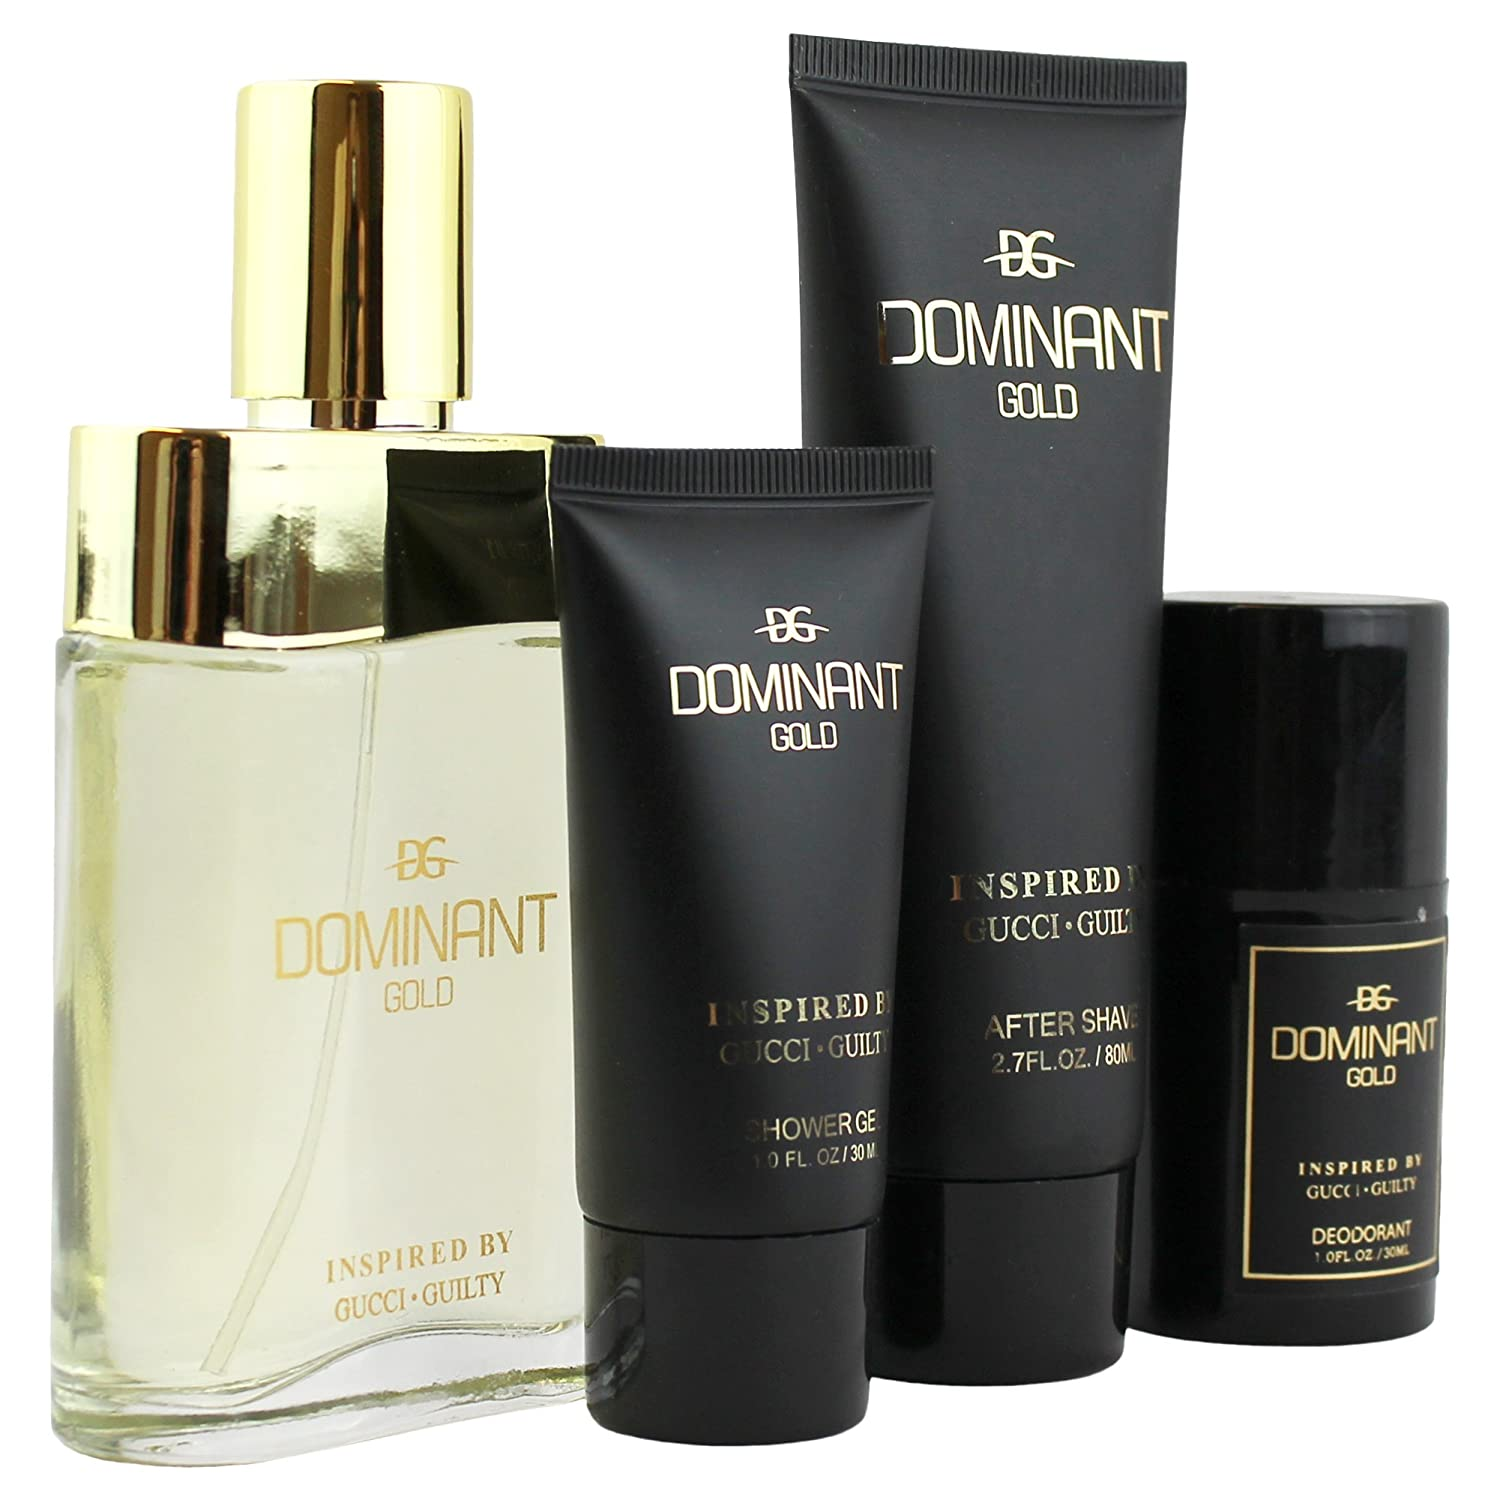 Amazon.com : Dominant Gold 4 Piece Fragrance Gift Set, Includes. Perfume, After Shave, Shower Gel And Deodorant Inspired By Guilty : Beauty